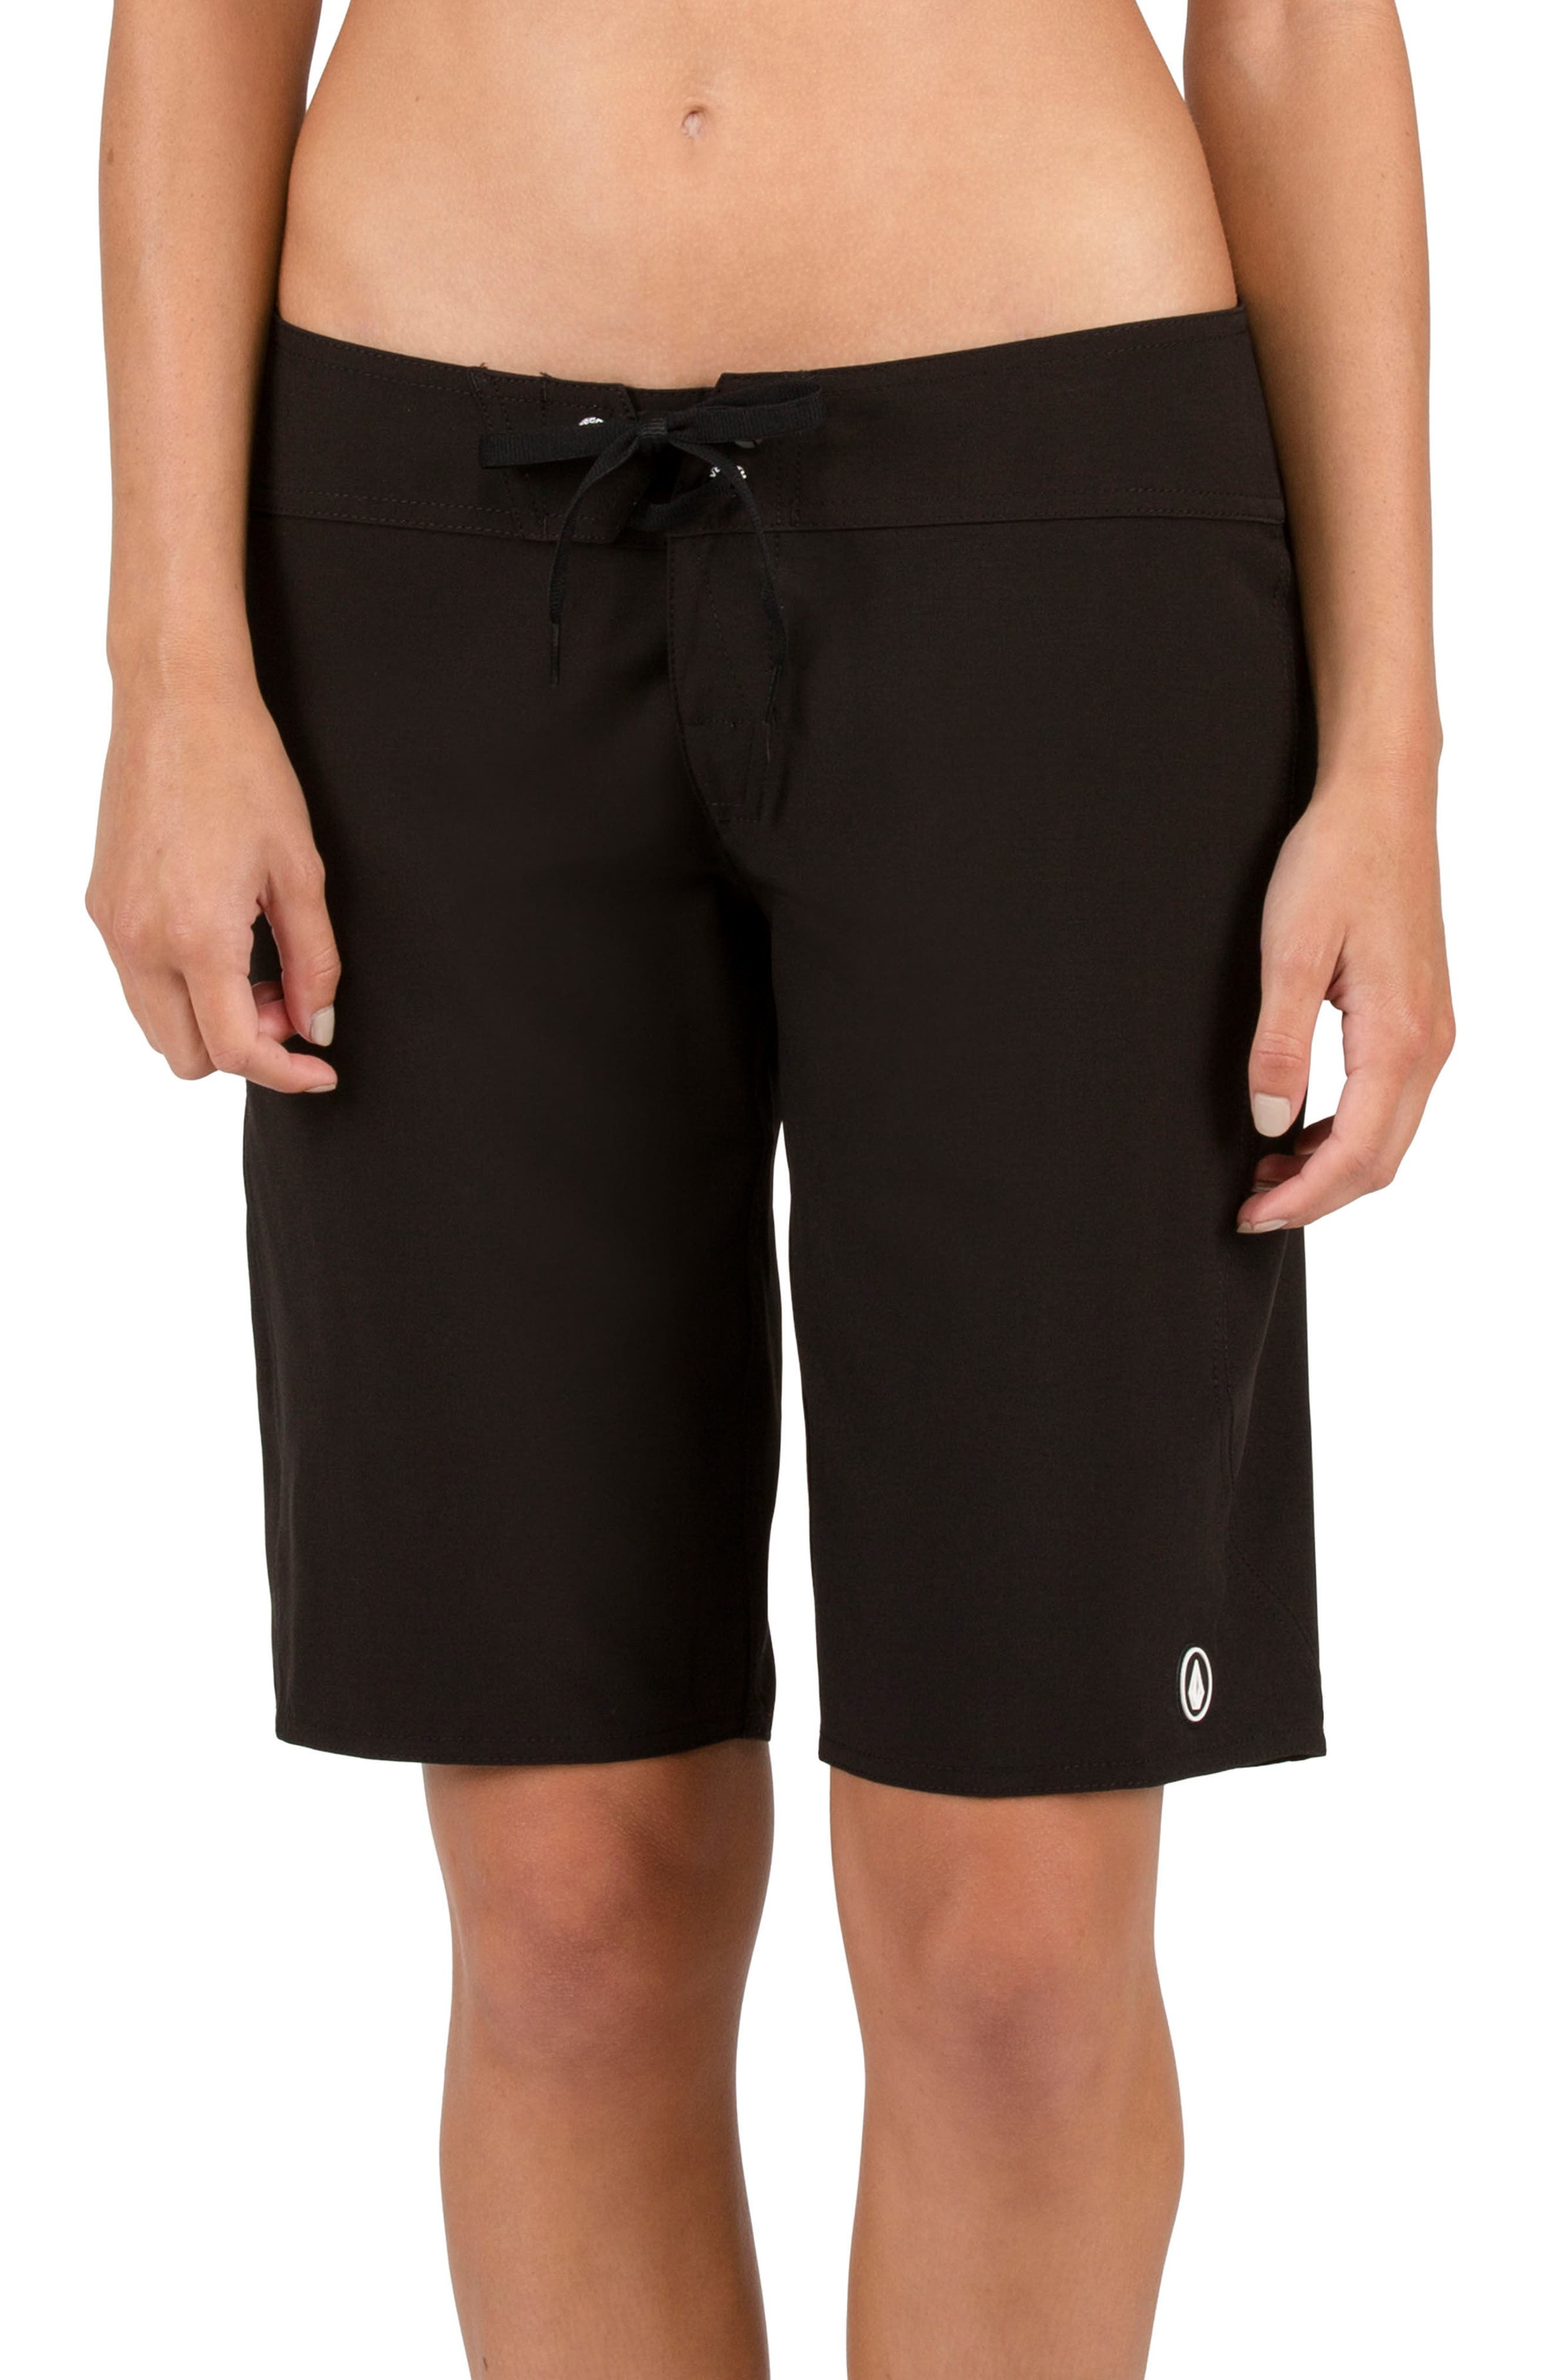 Simply Solid 11-Inch Board Shorts,                         Main,                         color, Black